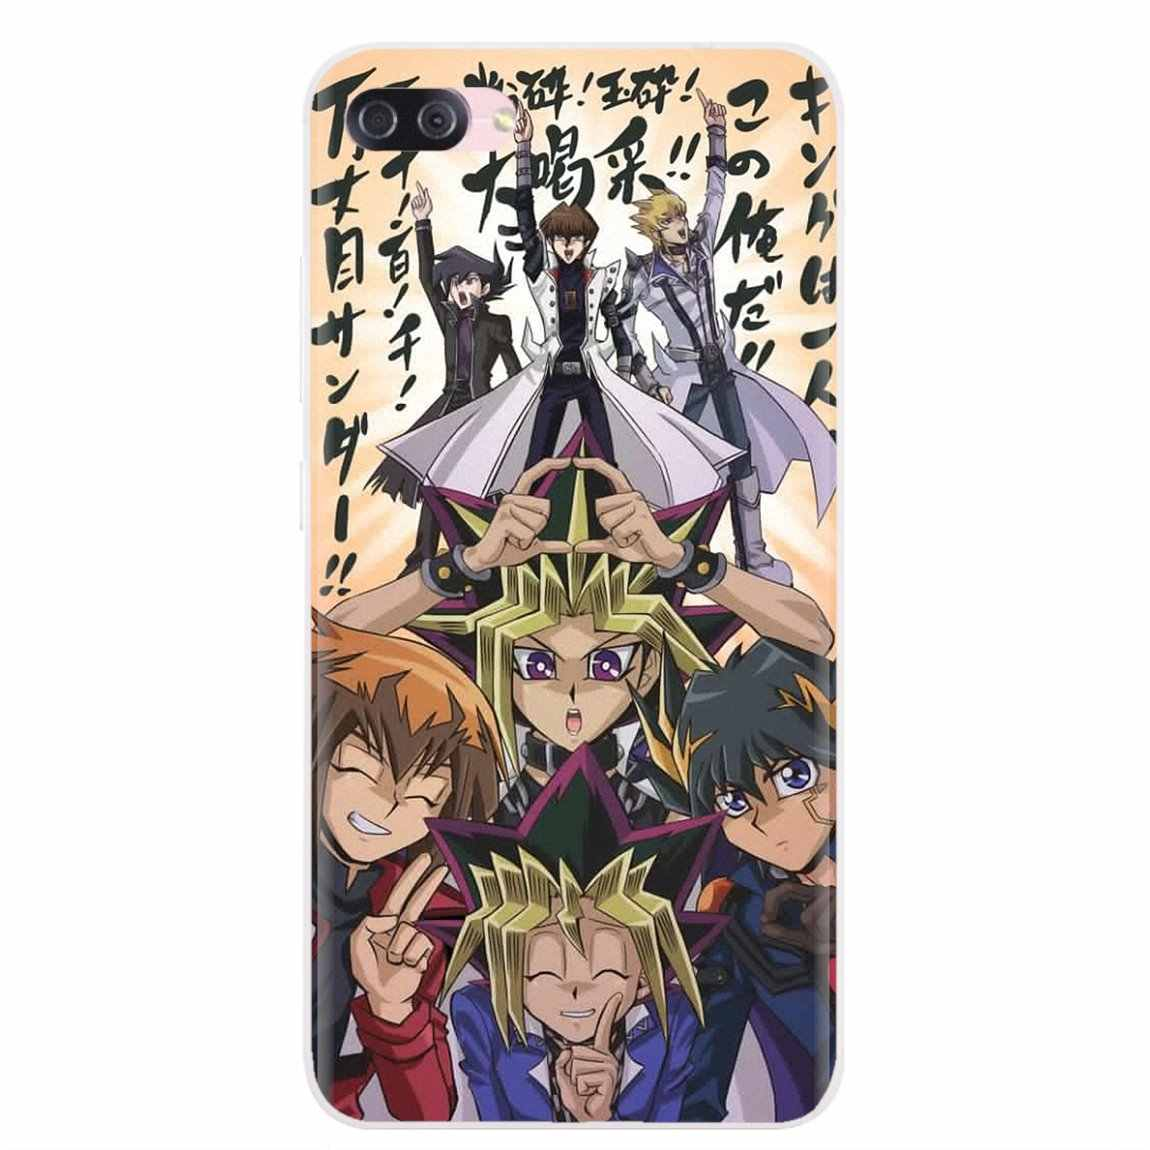 YuGiOh הגדול אלים מצריים עבור Samsung Galaxy הערה 2 3 4 5 8 9 S2 S3 S4 S5 מיני s6 S7 קצה S8 S9 בתוספת רך סיליקון TPU Case